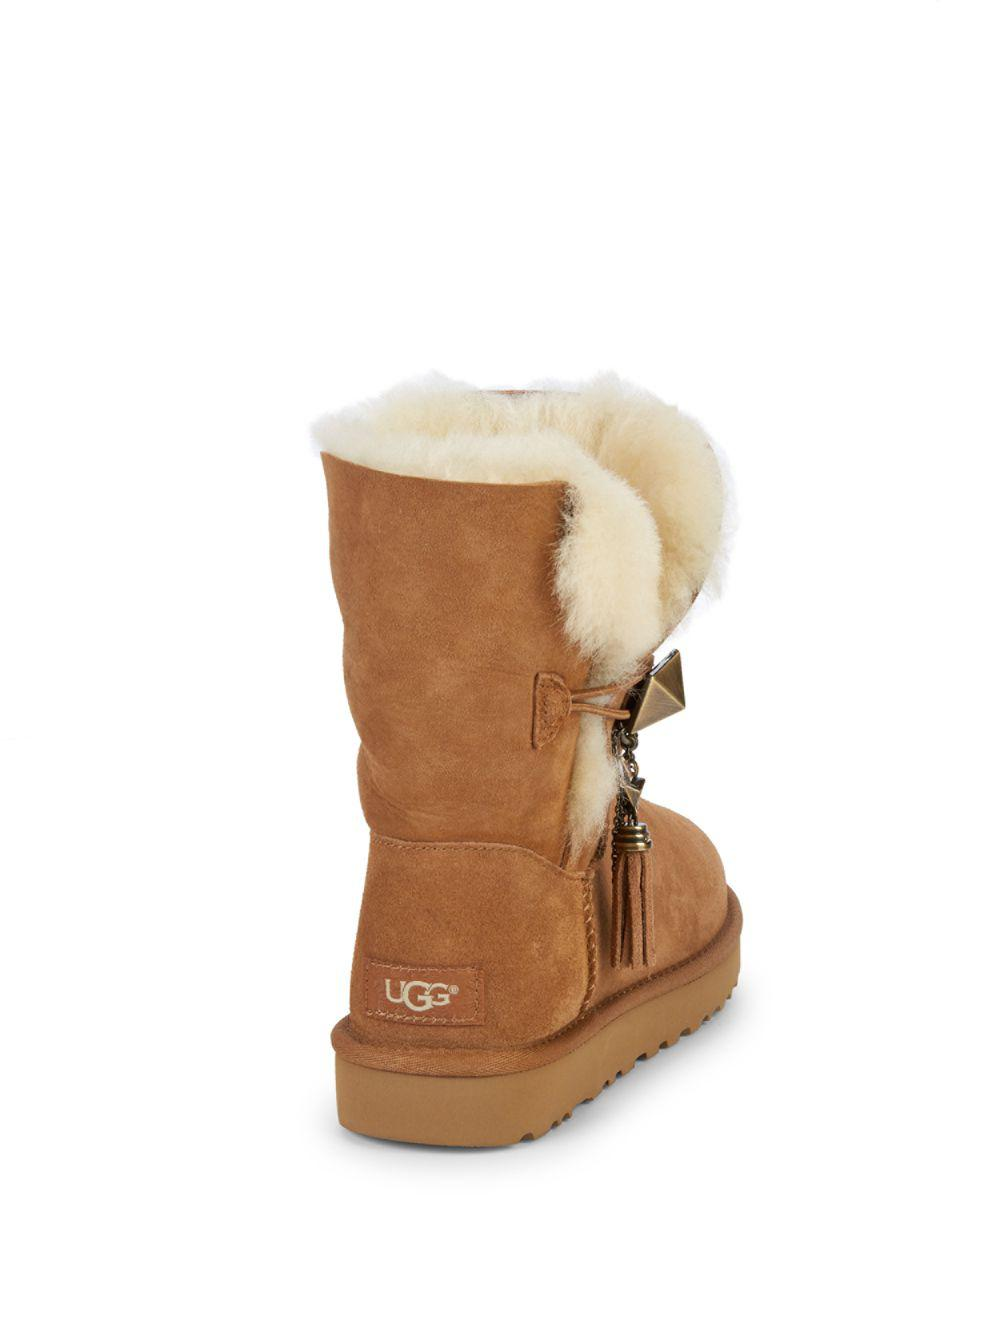 2c8334d80e1 Ugg - Brown Lilou Shearling-lined Suede Boots - Lyst